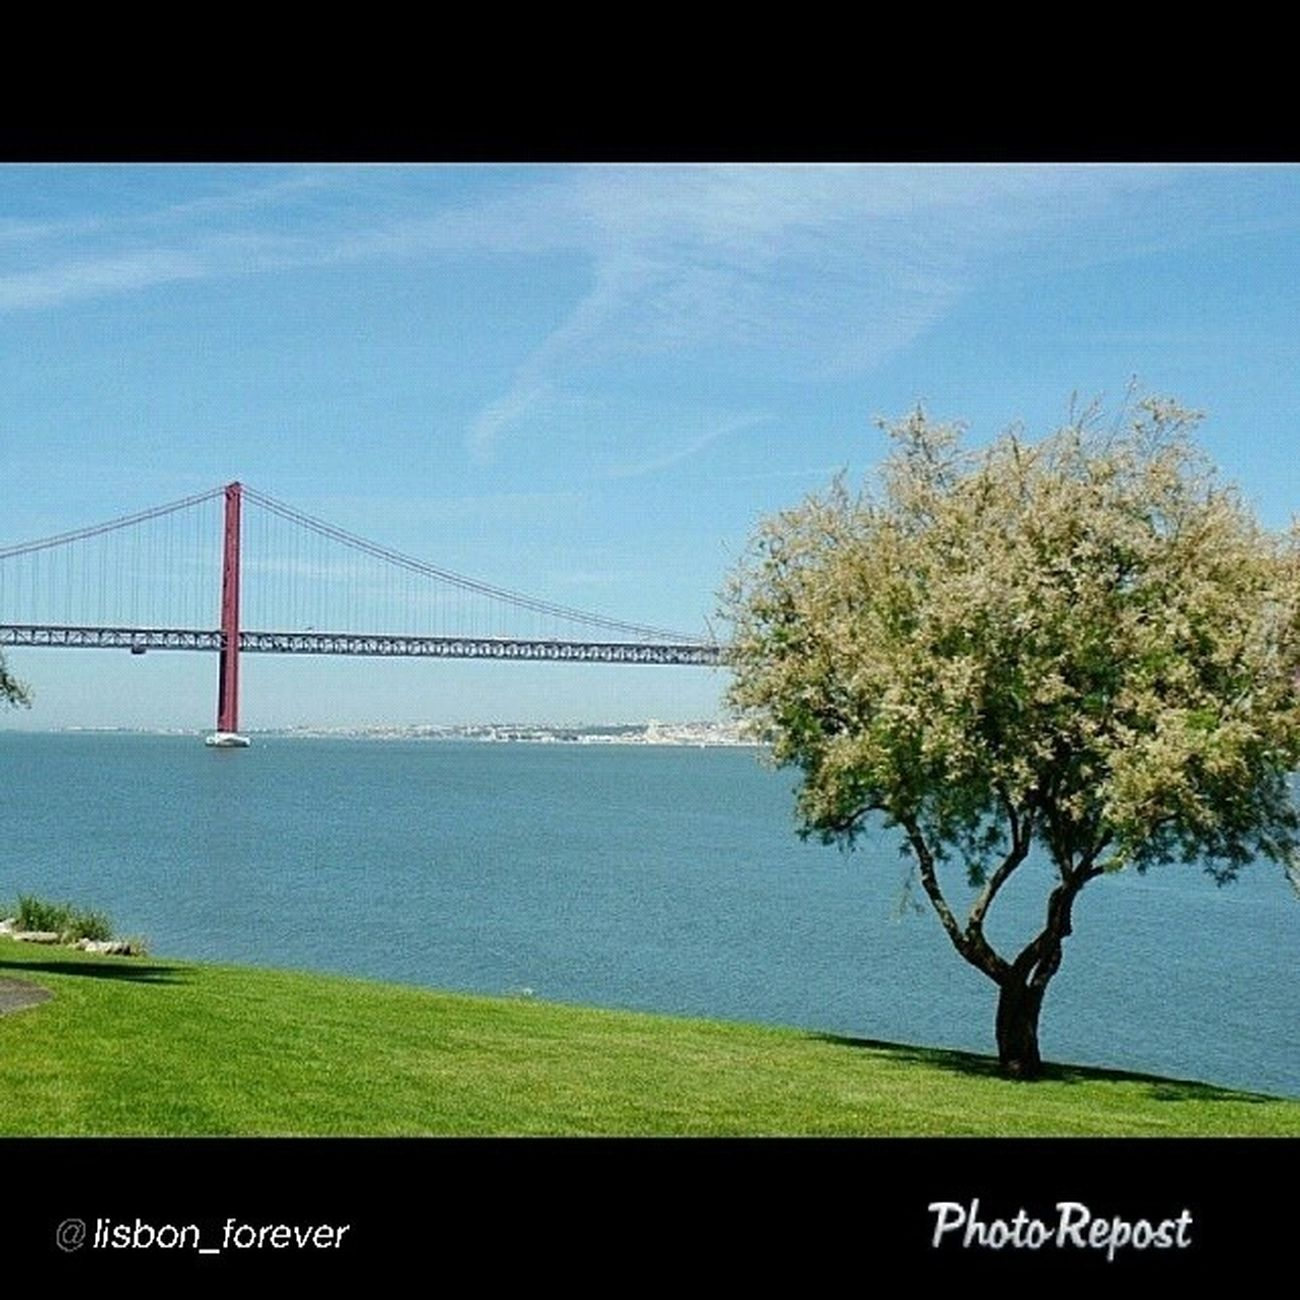 Muito obrigado à @lisbon_forever pelo destaque da minha foto como foto do dia. É um orgulho ser destacado na vossa galeria. Amo Lisboa. Lisbon forever mesmo! Thanks to @ lisbon_forever for the highlight of my photo. I'm proud to be featured in your gallery. Love Lisbon. Lisbon forever! Lisbonforever Lisboa Lisbon